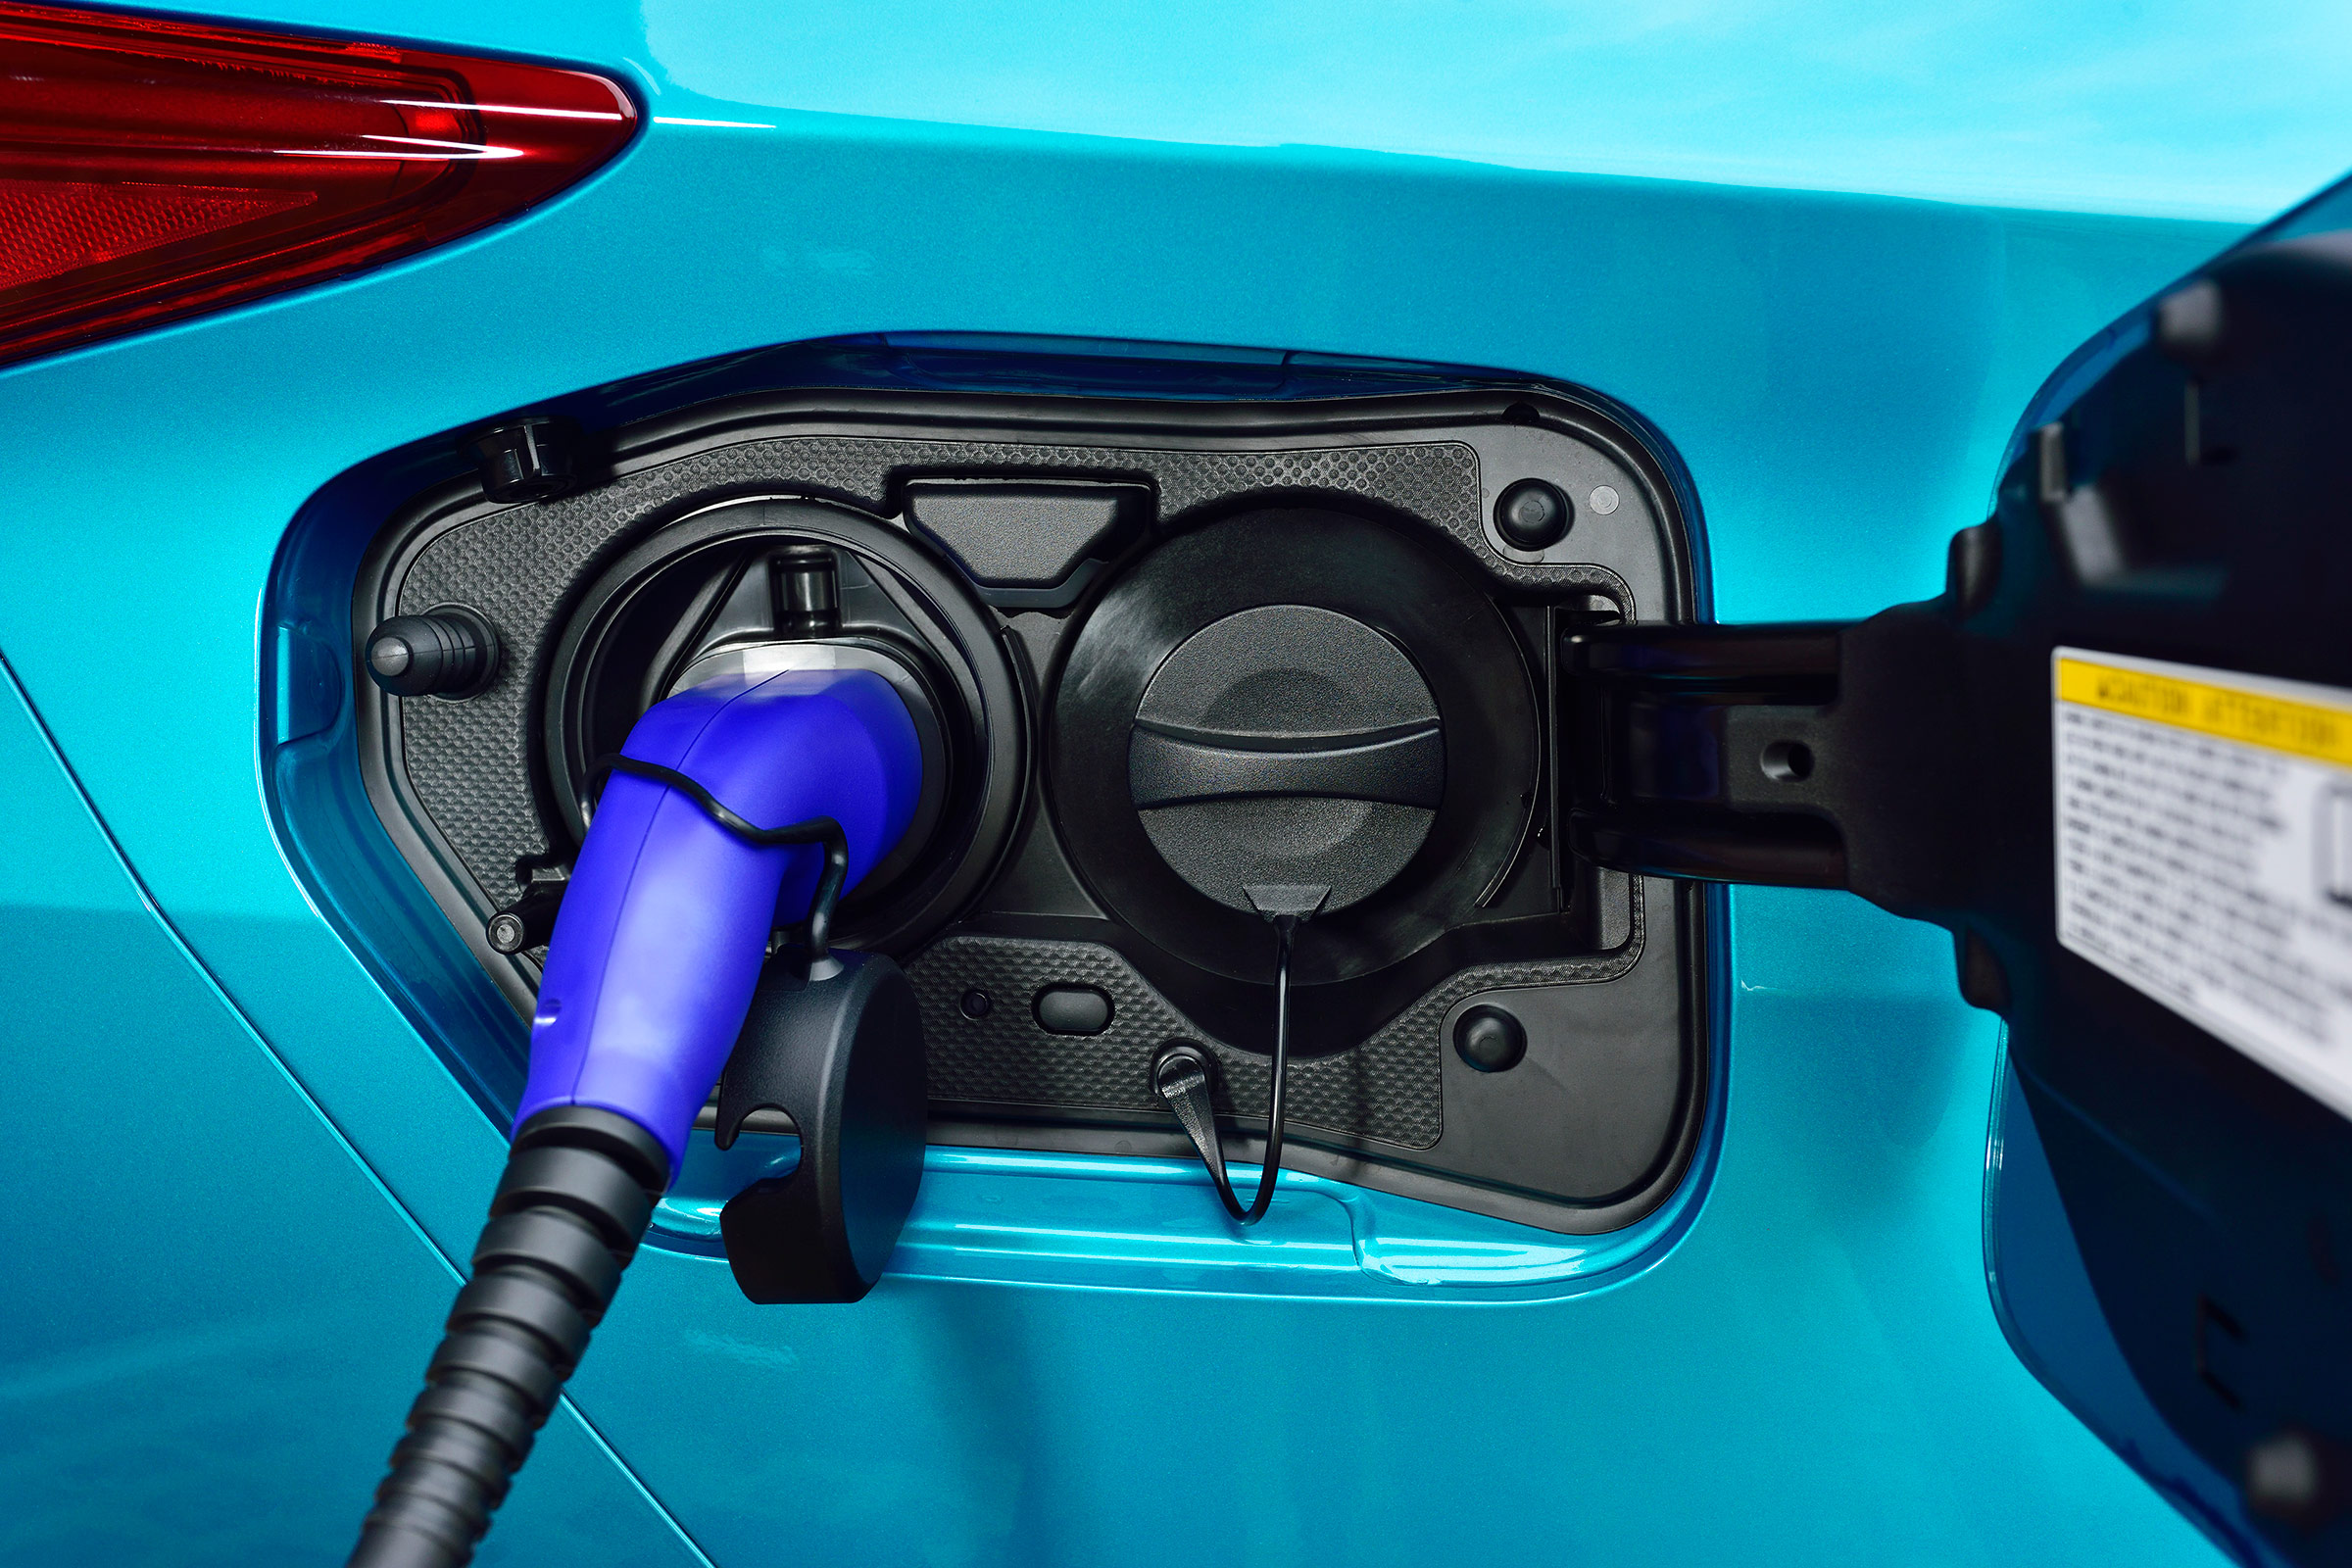 2017 Toyota Prius Blue Exterior View Charger Port (Photo 2 of 64)